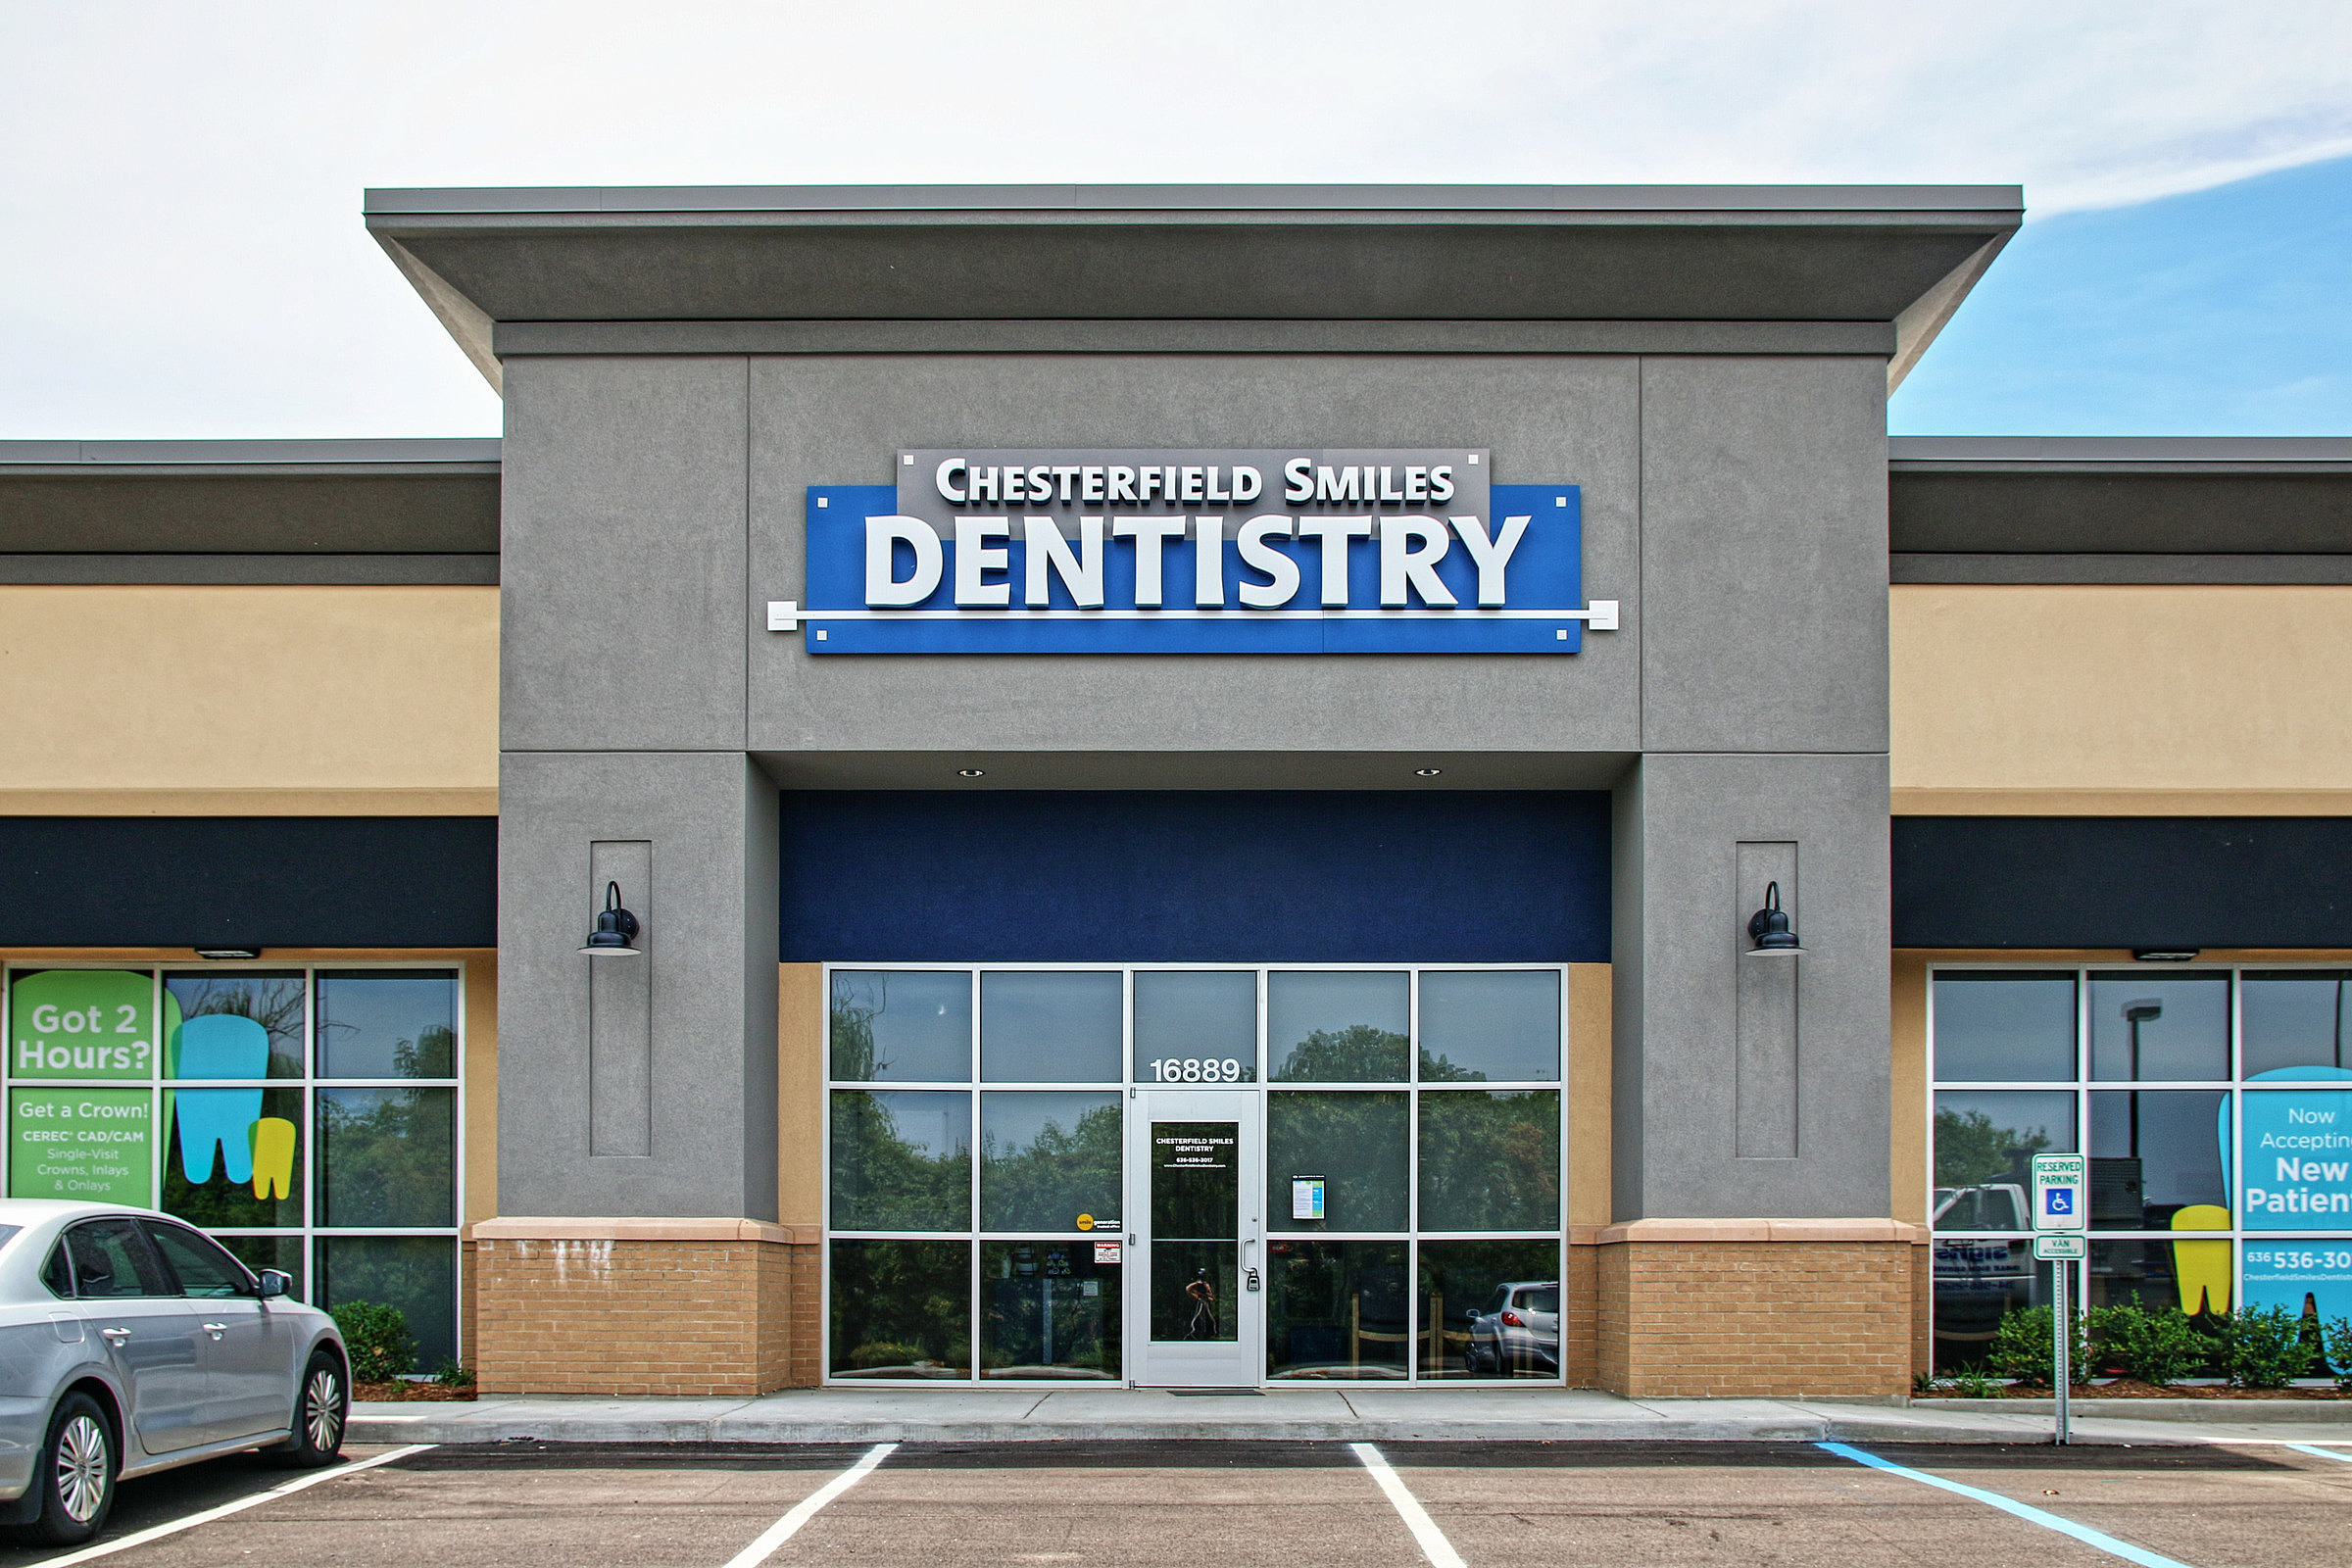 Chesterfield Smiles Dentistry, Chesterfield Missouri (mo. Satellite Internet Services Dodge Dealer Ny. Dull Pain Lower Right Back Bonded T1 Pricing. Pharmacy Technician Salary In Ny. Video Marketing Statistics House Painters Ct. Does Dish Network Have Internet. Aviation Mechanics School Medicare Gov Plan D. Human Resource Management Online Course. Cant Connect To Internet Stock Trading Basics